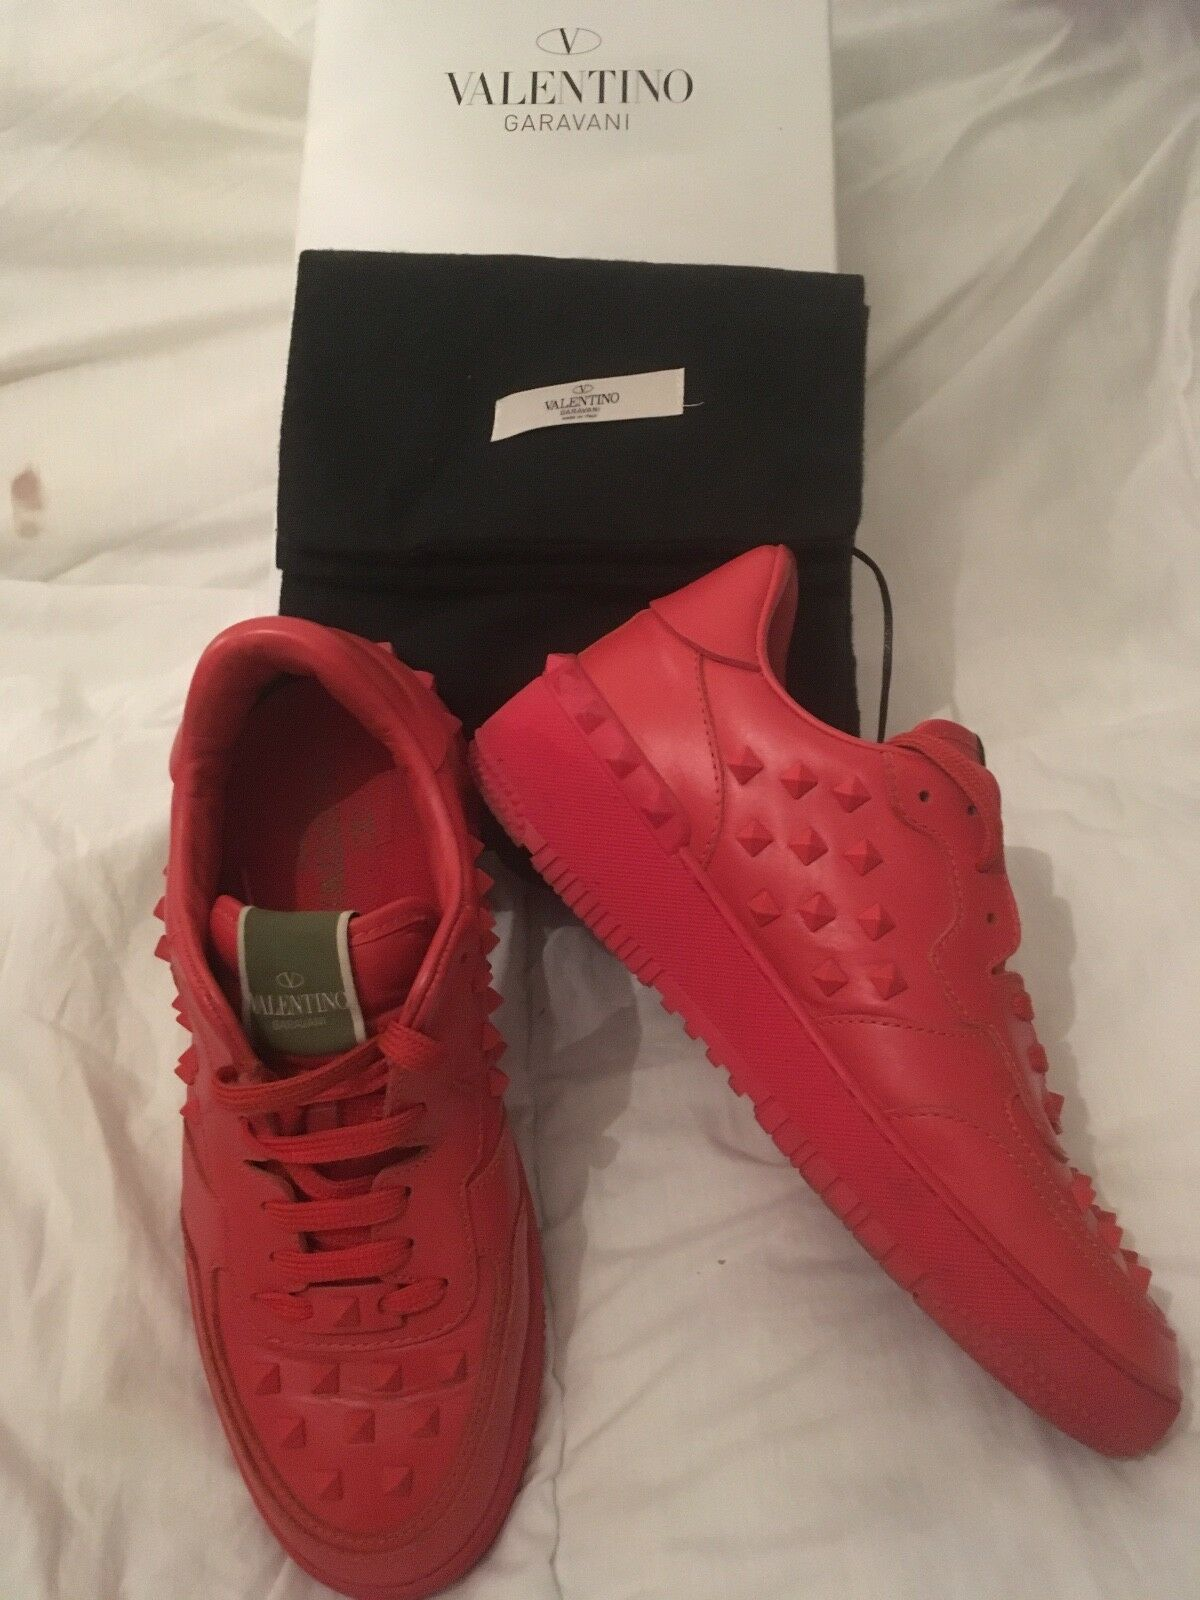 Mens Valentino shoes Size 9